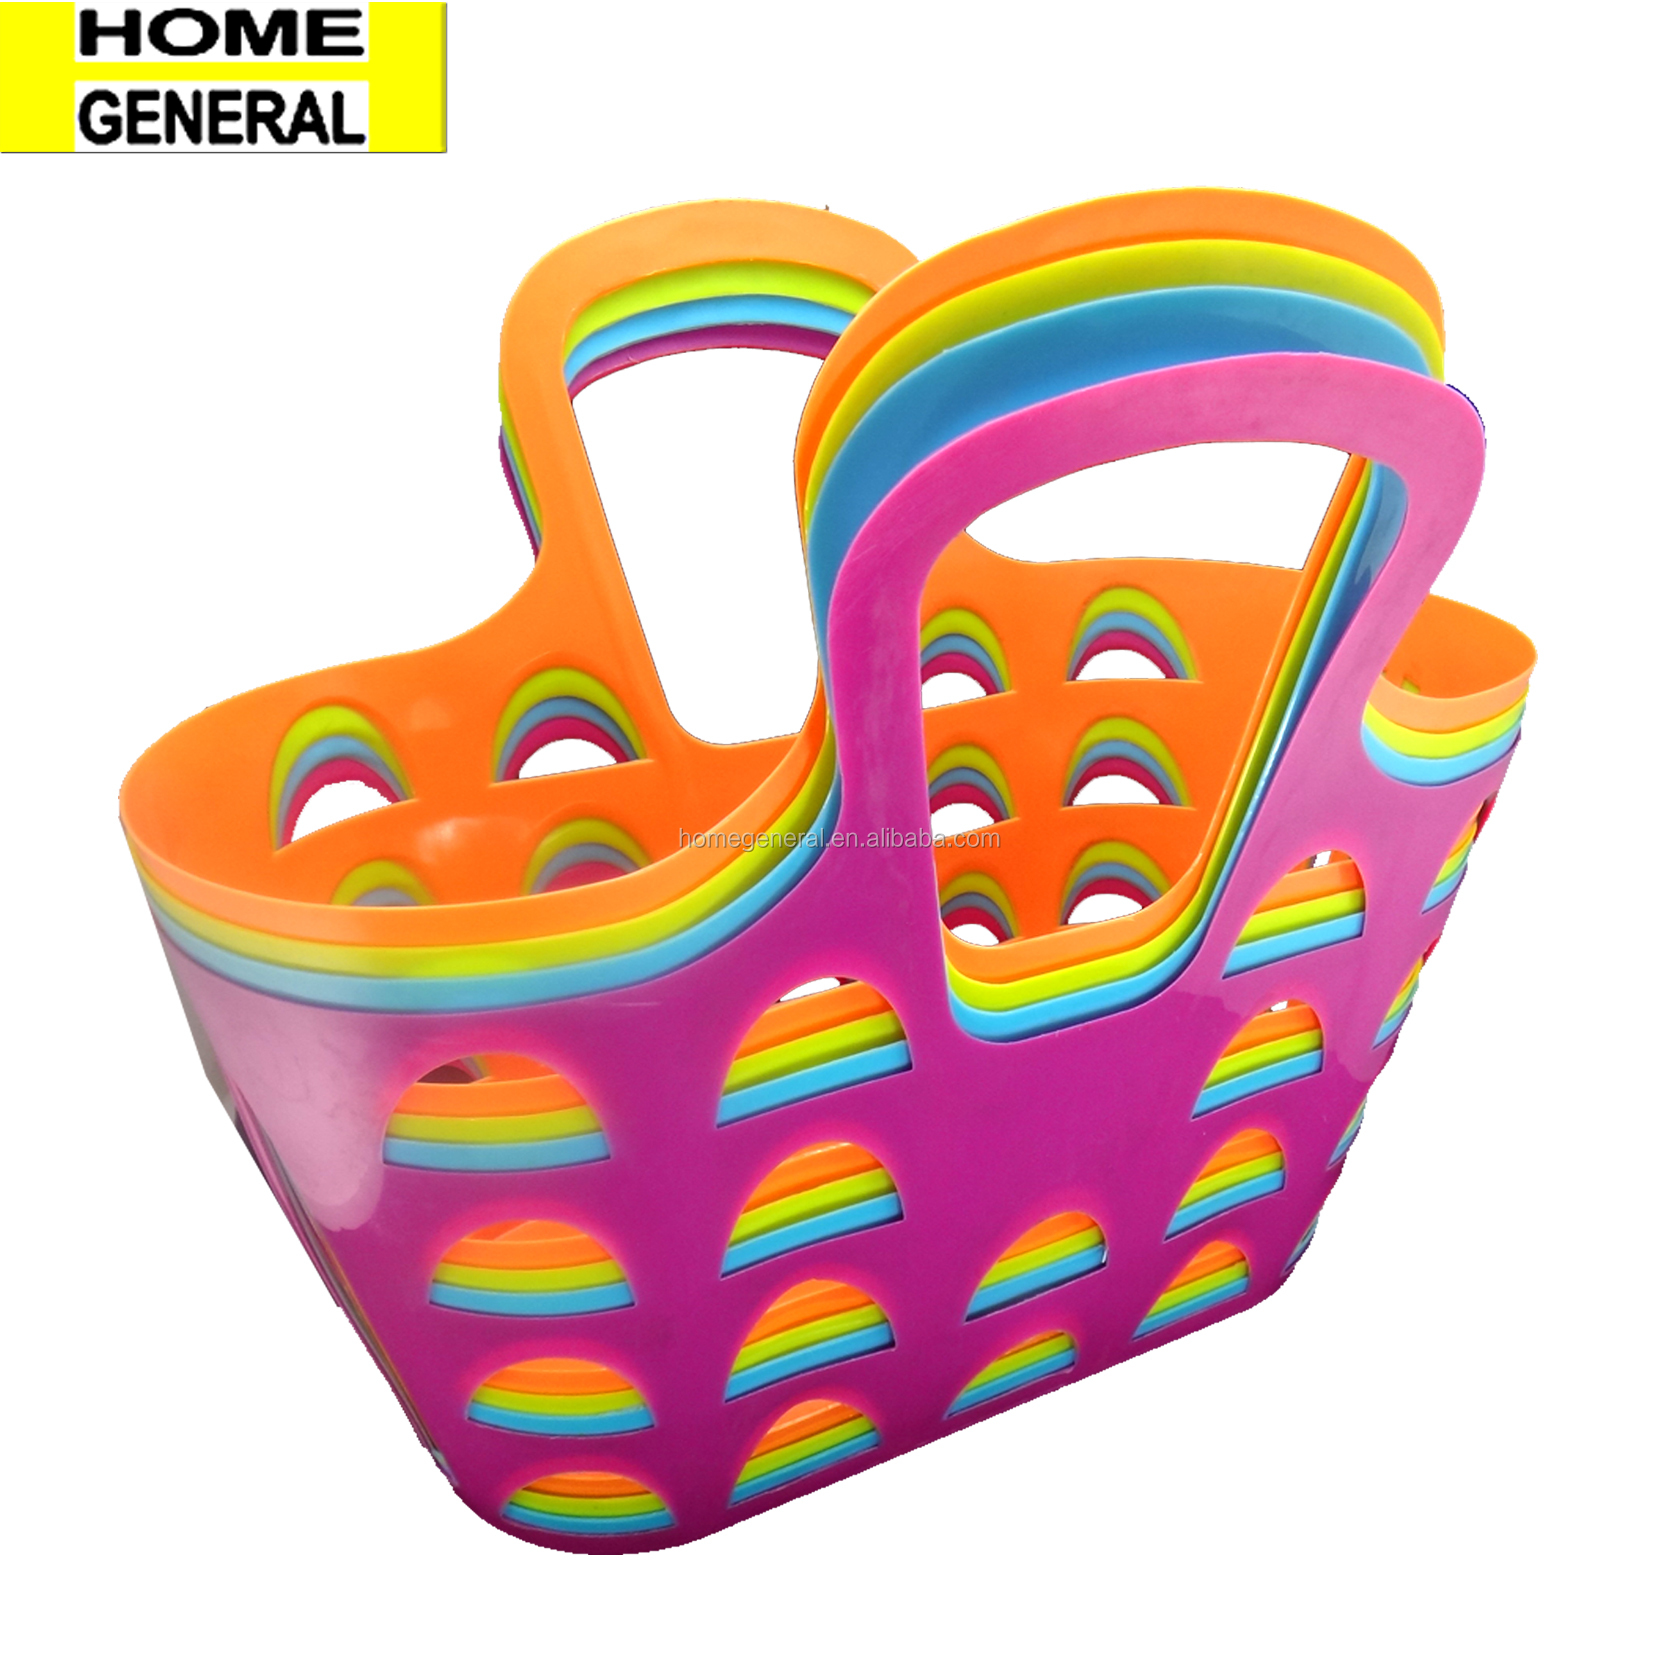 PLASTIC SHOPPING GROCERY BASKET